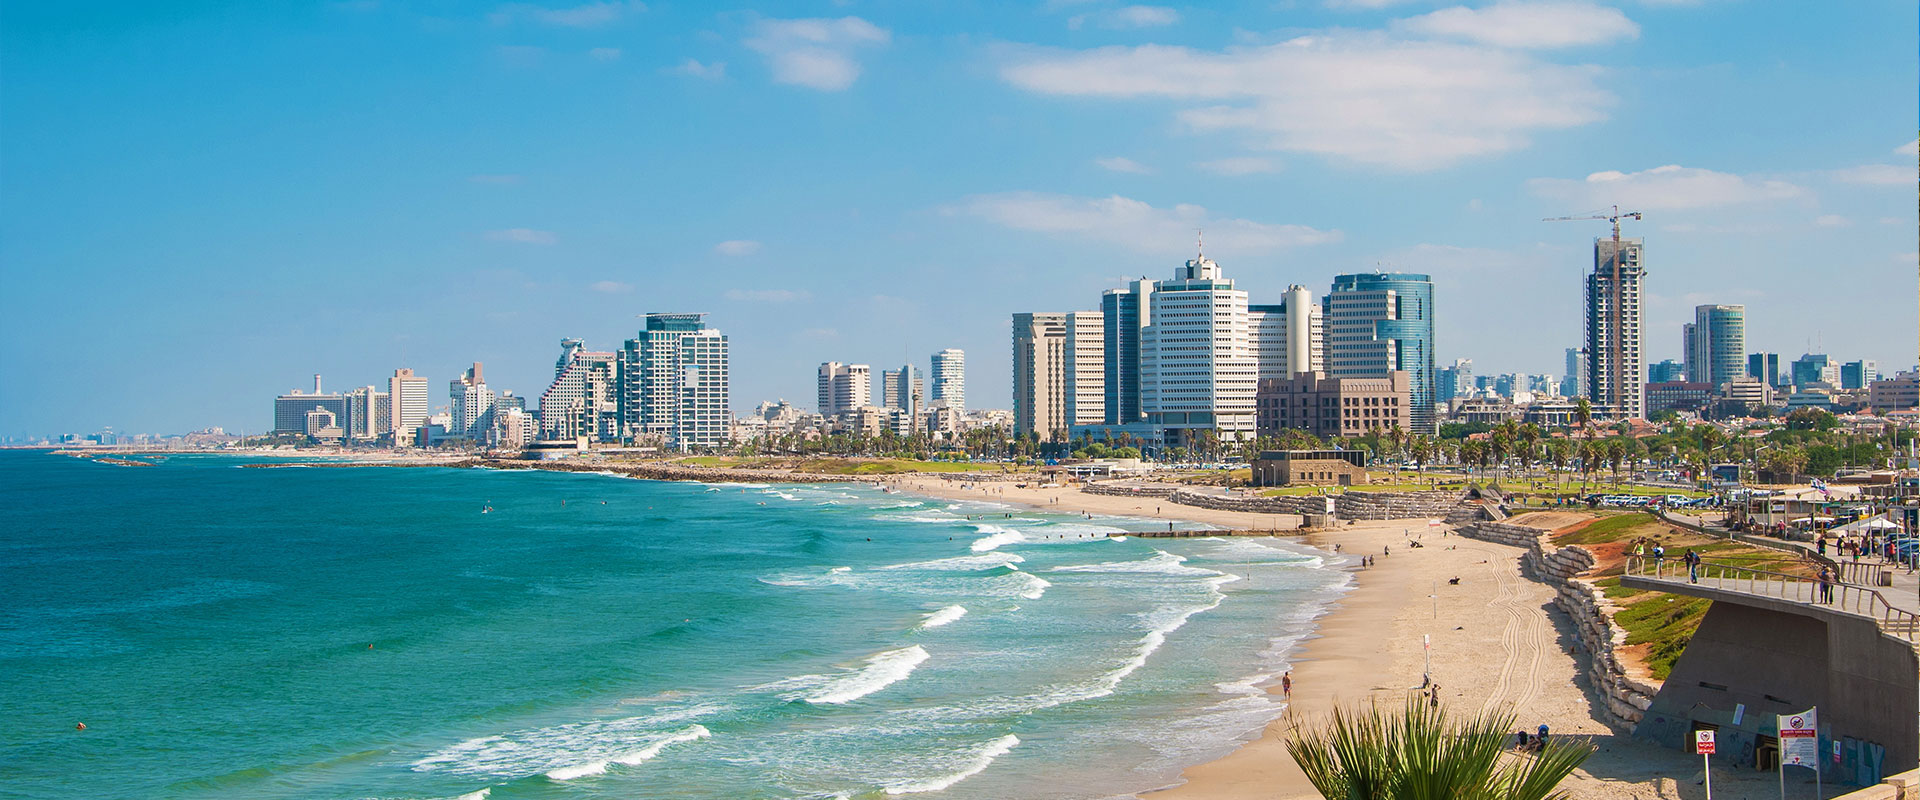 Specialty Tours to Israel fron Toronto and Canada